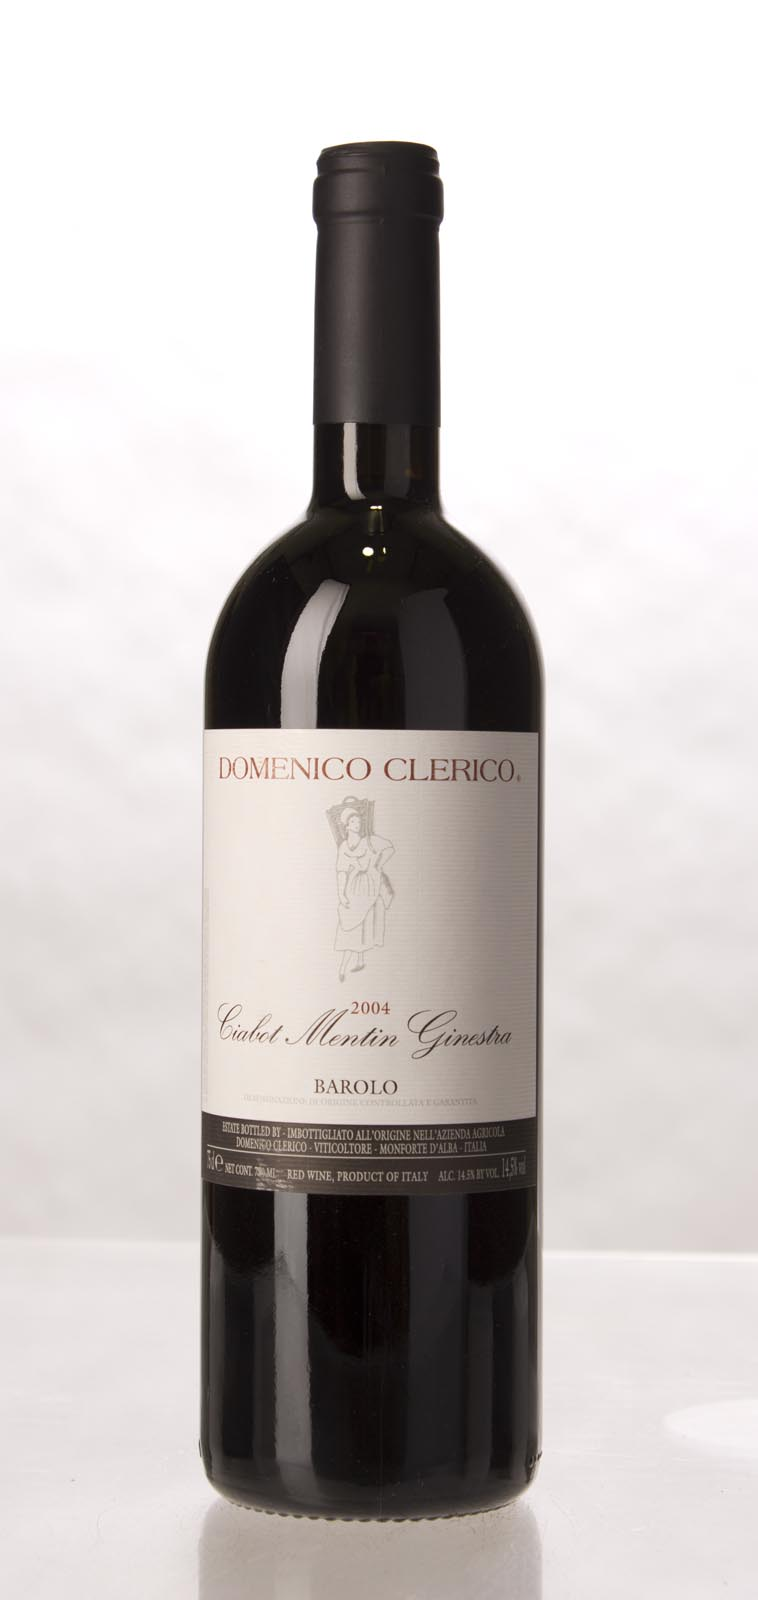 Domenico Clerico Barolo Ciabot Mentin Ginestra 2004, 750mL (WA97, VN98) from The BPW - Merchants of rare and fine wines.